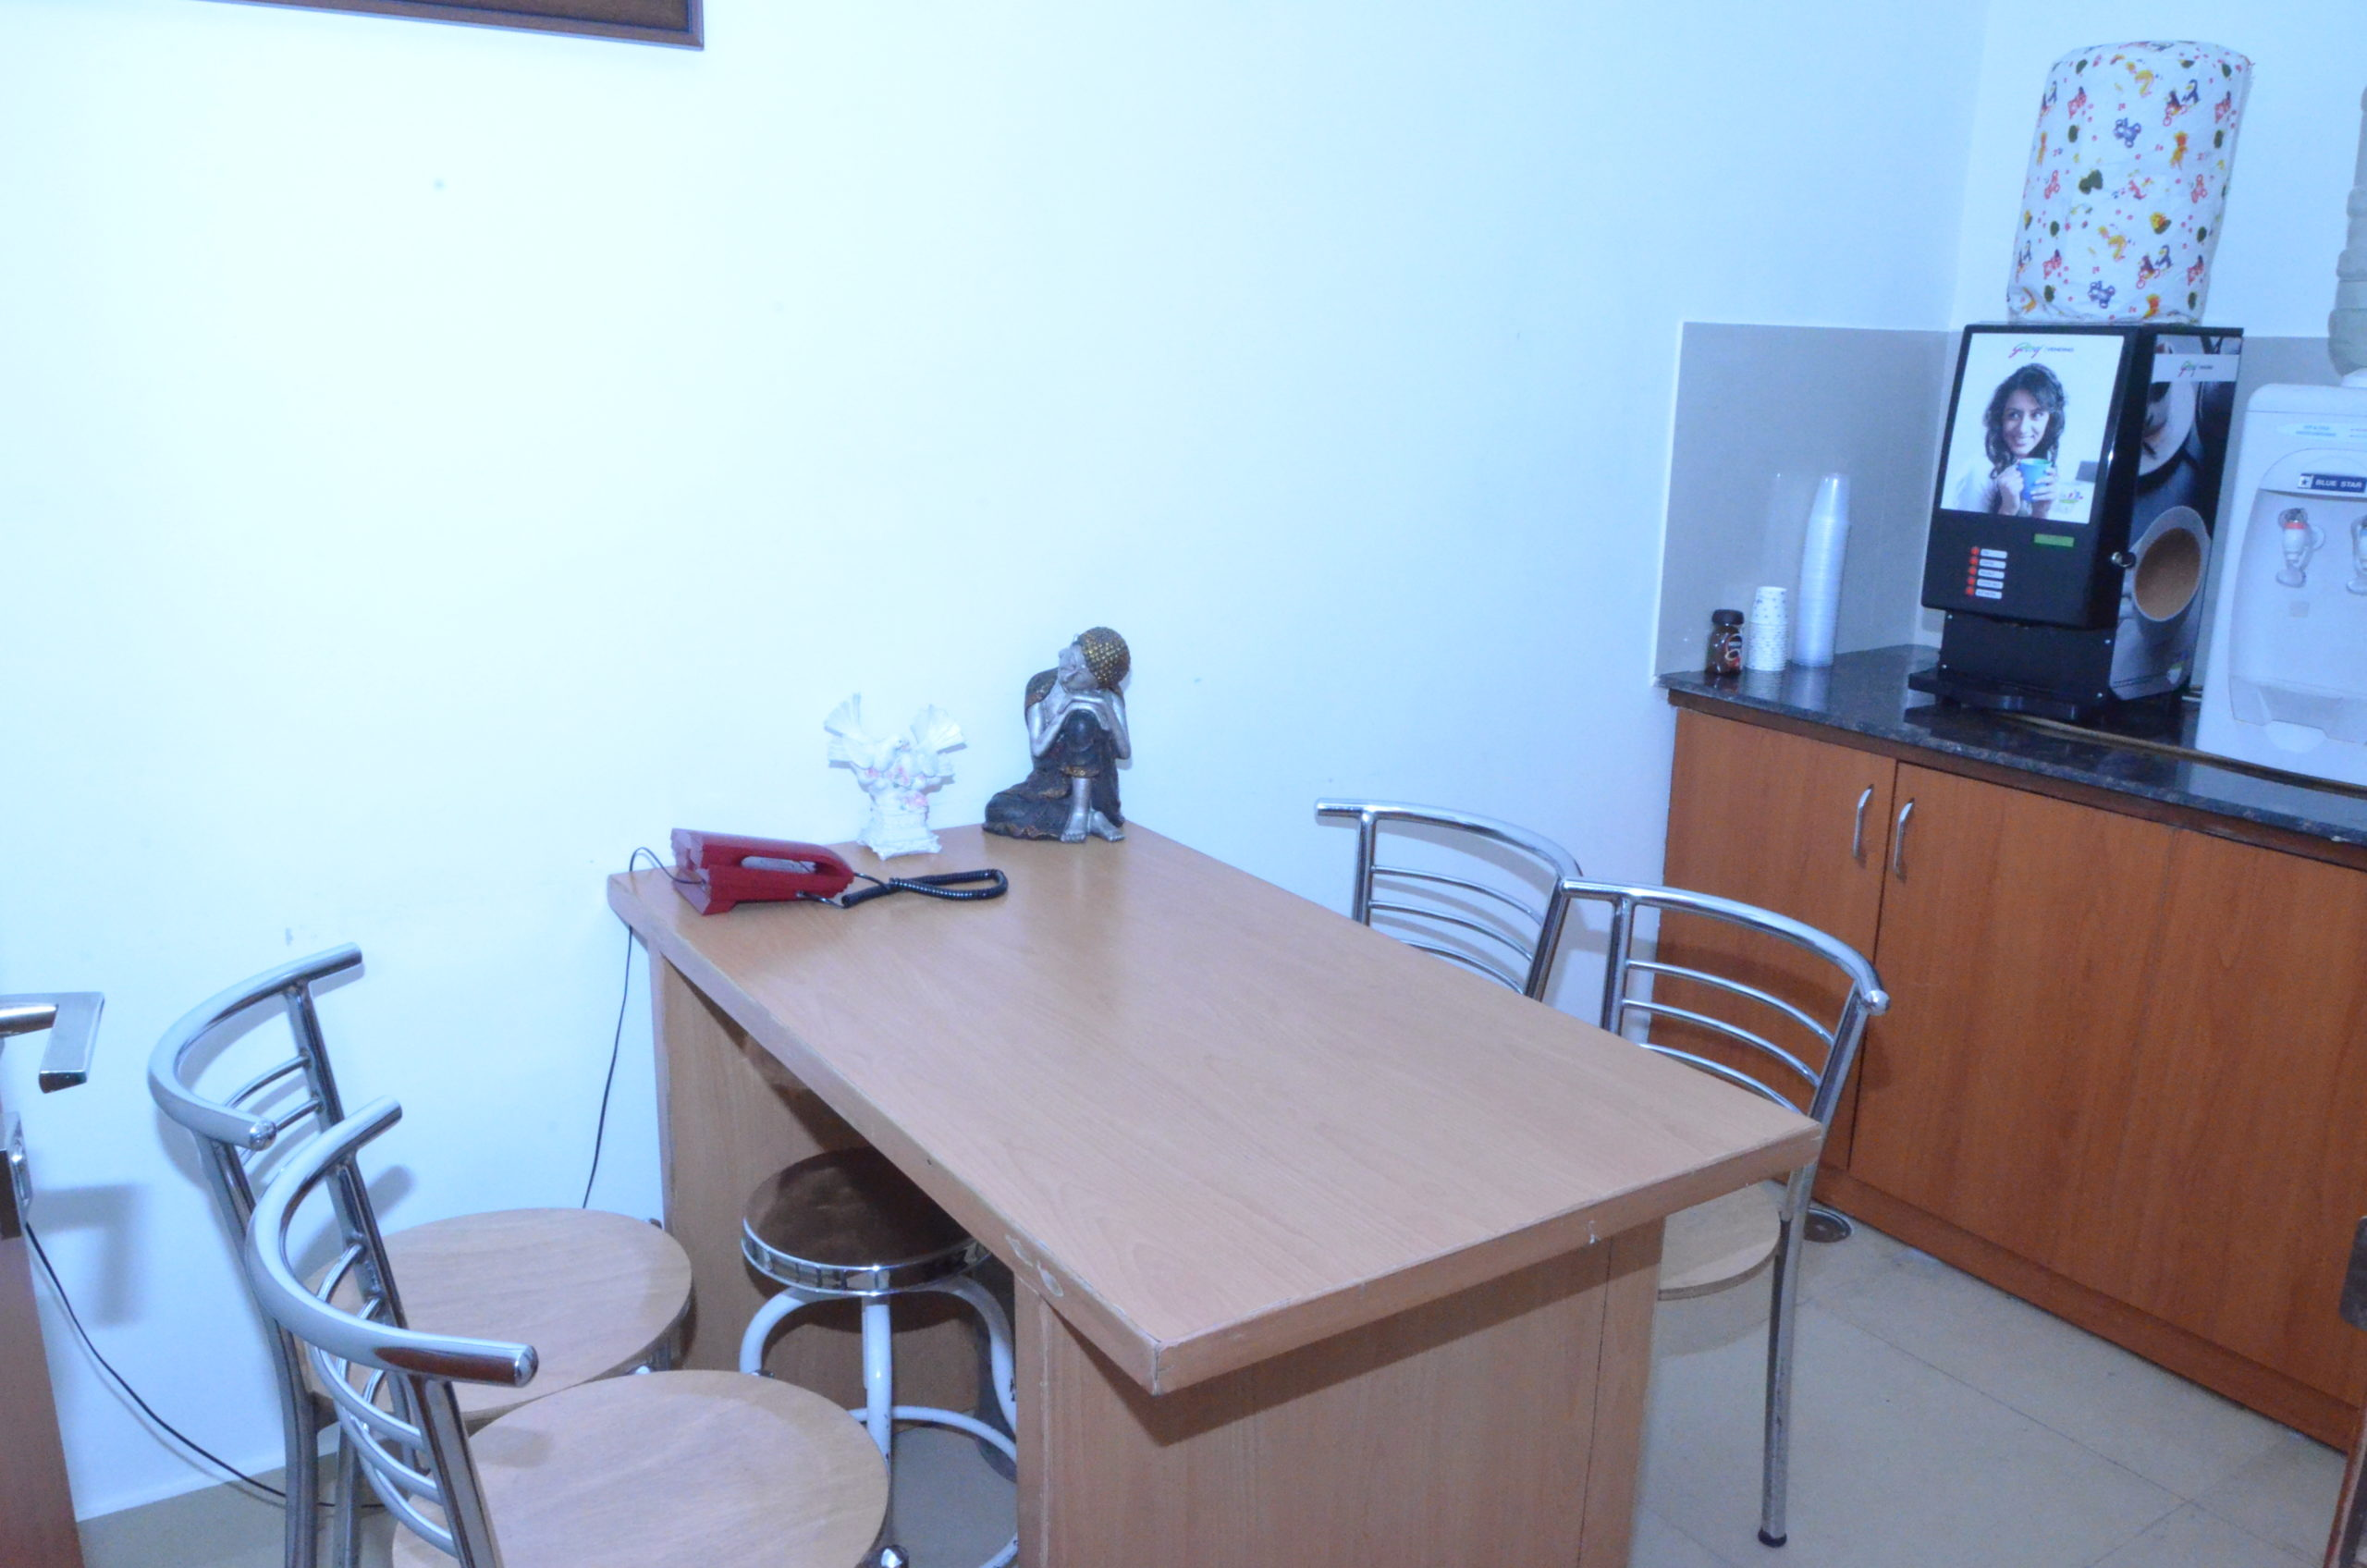 sci ivf clinic lunch room